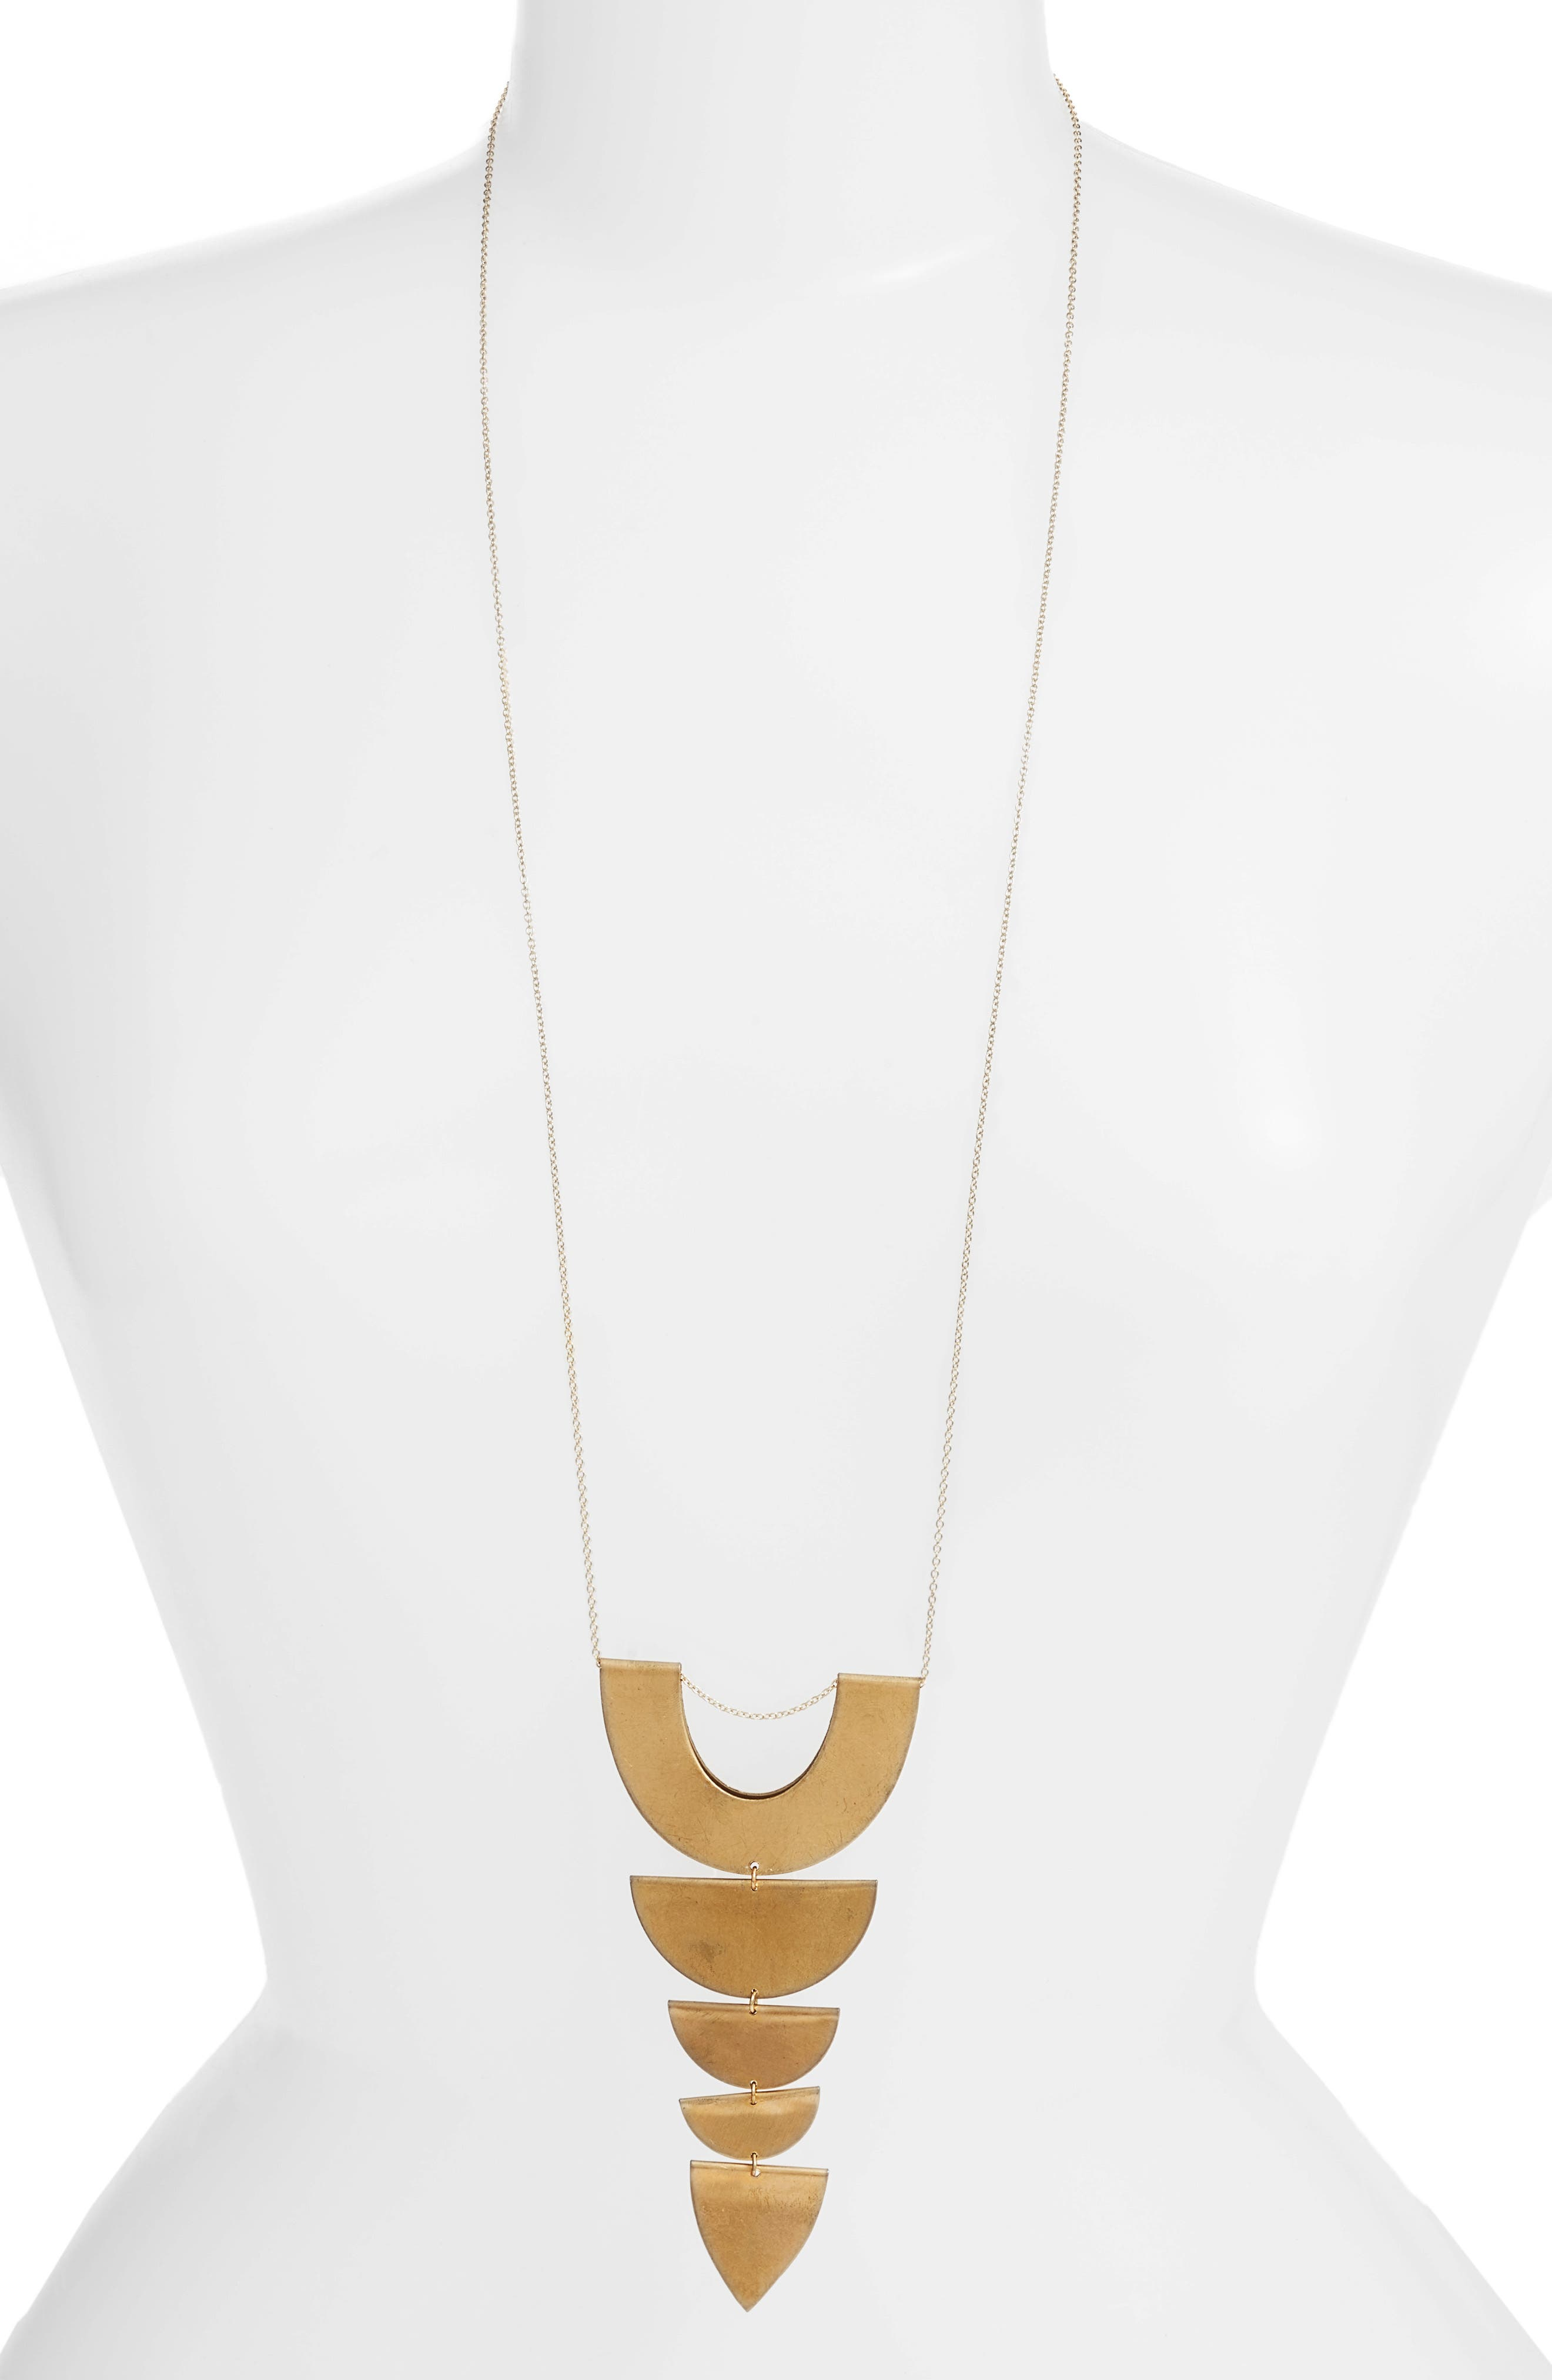 Tiered Pendant Necklace,                             Main thumbnail 1, color,                             710